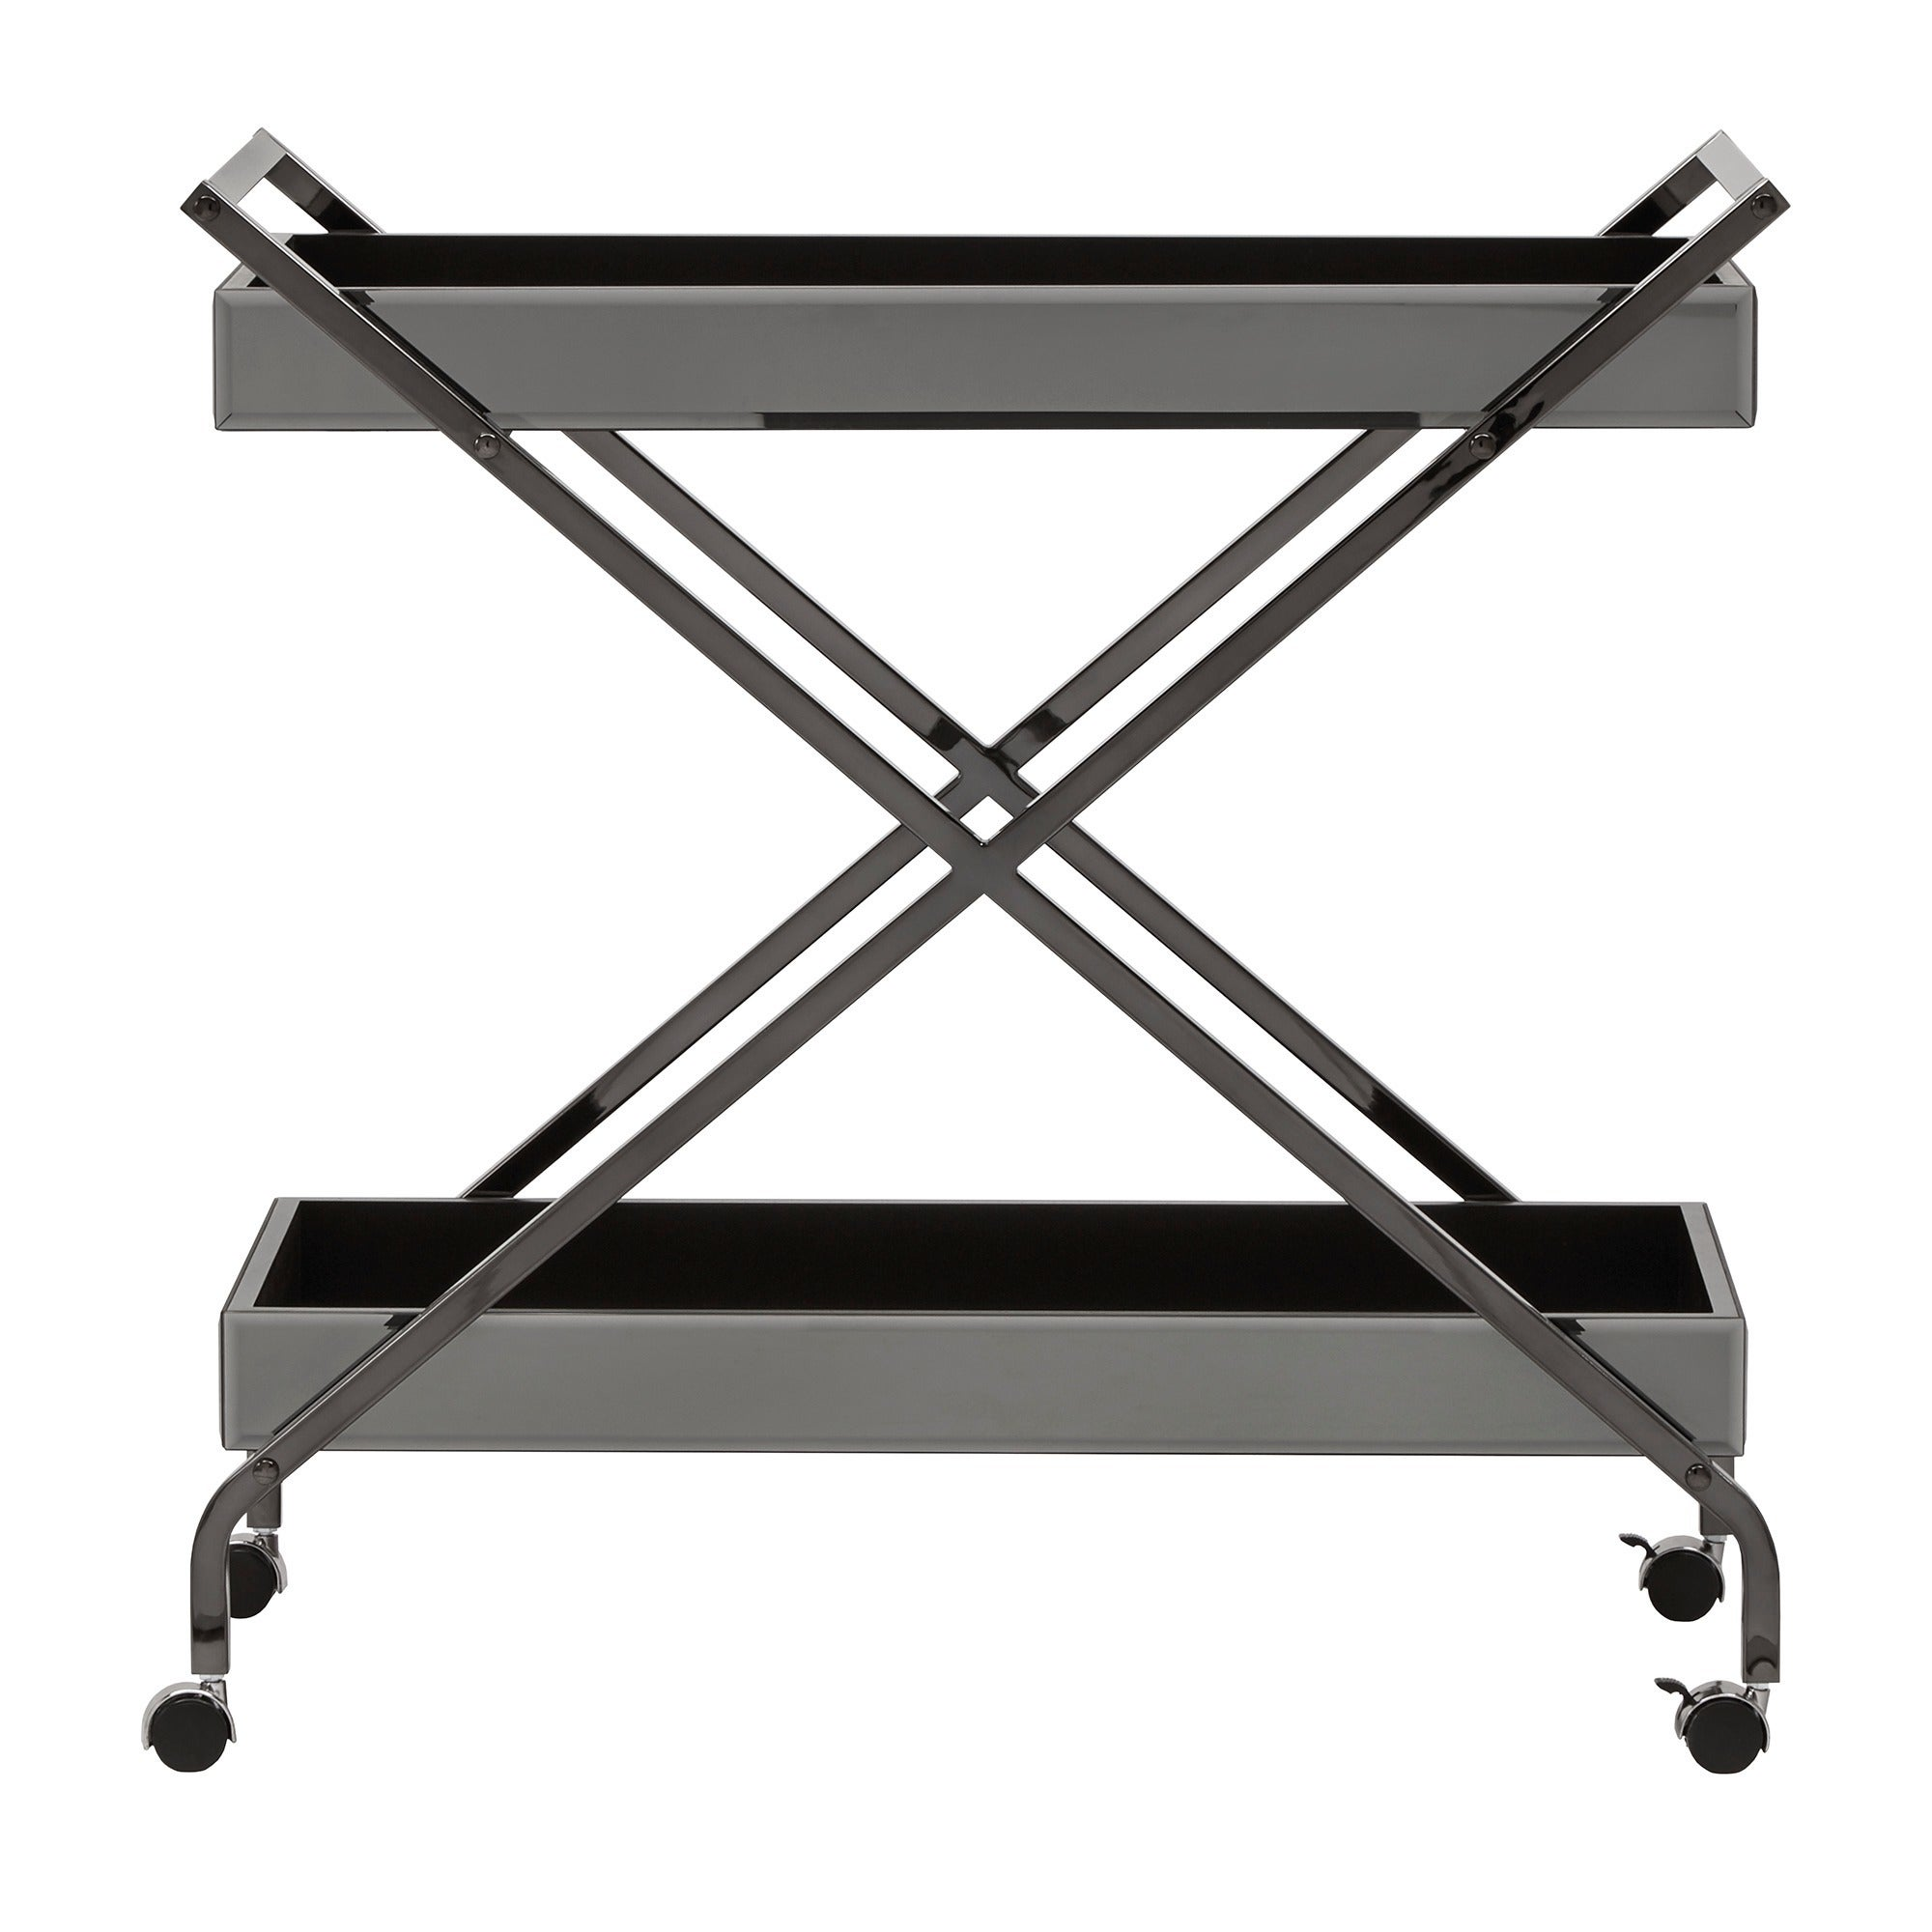 Zeke Contemporary Mirrored Metal Bar Cart by iNSPIRE Q Bold - Free Shipping  Today - Overstock.com - 24355638